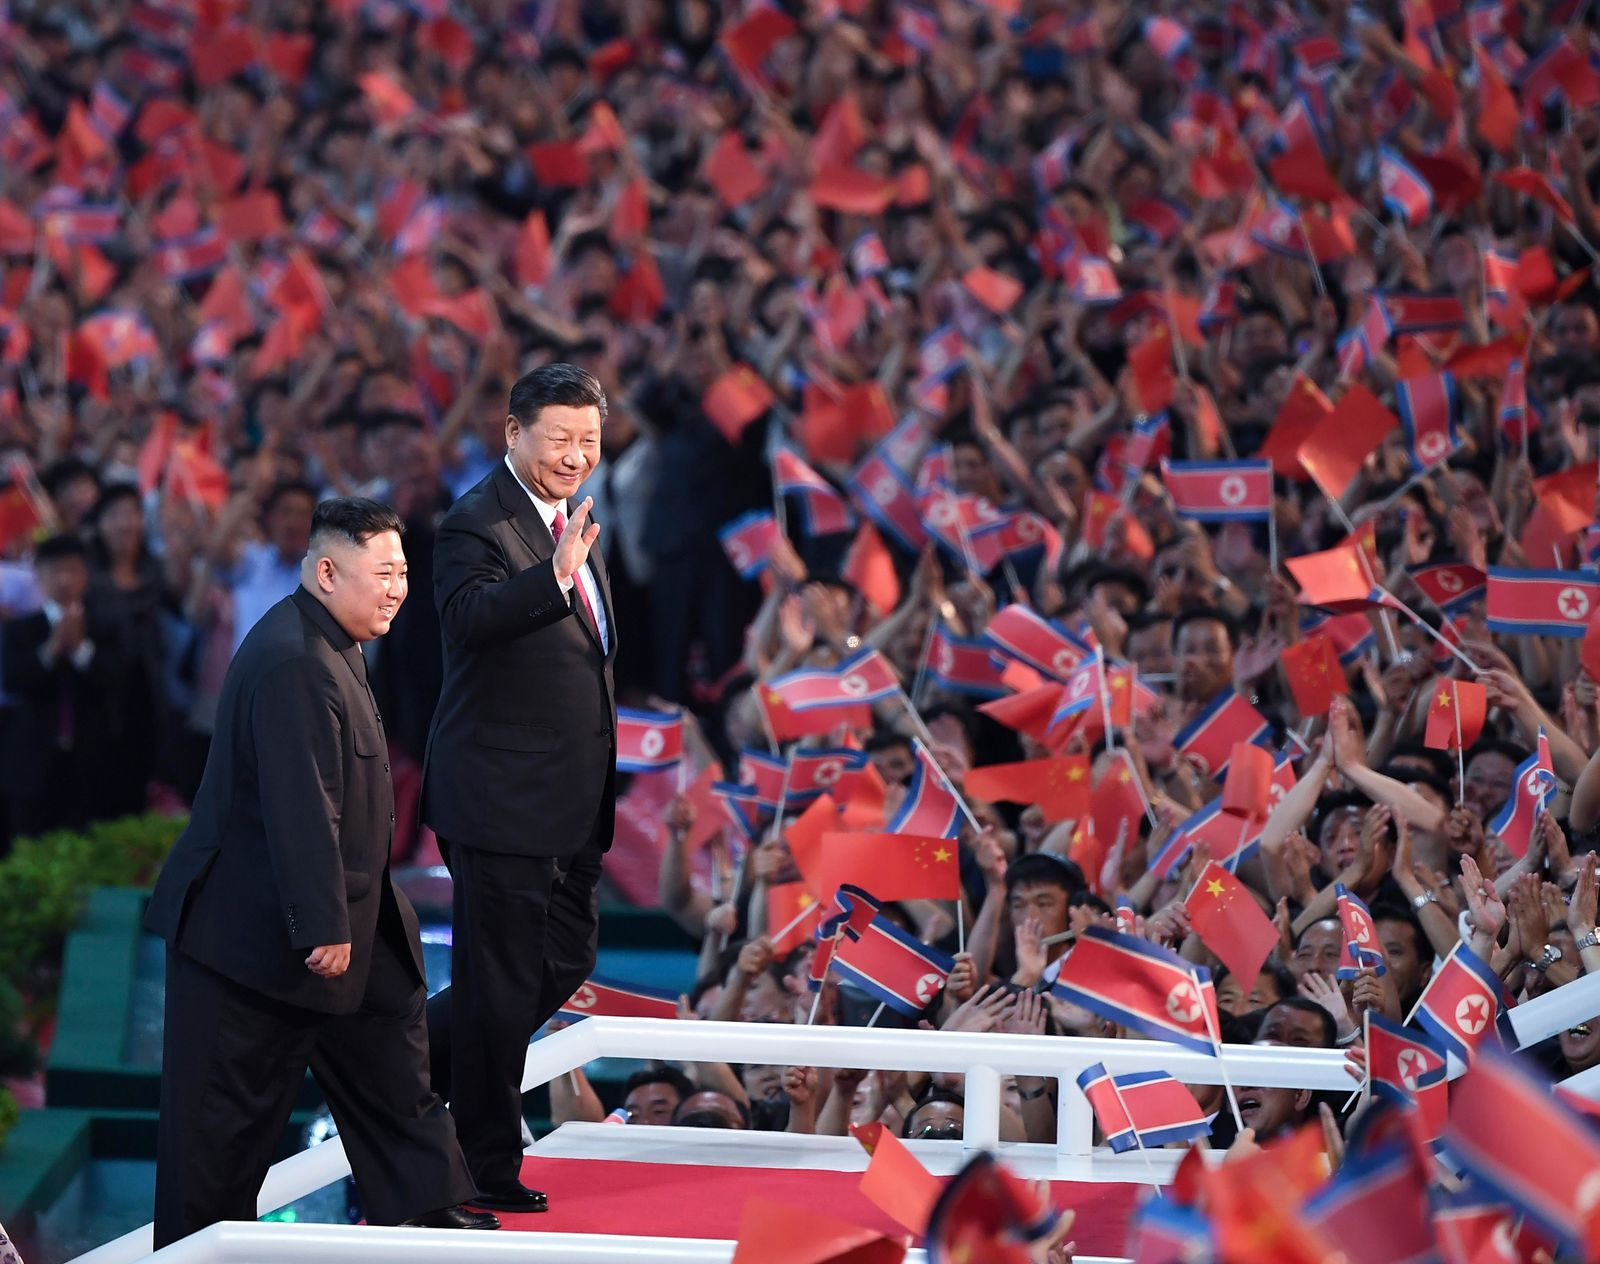 In this Thursday, June 20, 2019, photo released by China's Xinhua News Agency, spectators wave Chinese and North Korean flags as North Korean leader Kim Jong Un, left, and visiting Chinese President Xi Jinping attend a mass gymnastic performance at the May Day Stadium in Pyongyang, North Korea. North Korean leader Kim Jong Un, meeting in Pyongyang with Chinese President Xi Jinping, said Thursday that his country is waiting for a desired response in stalled nuclear talks with the United States. (Yan Yan/Xinhua via AP)